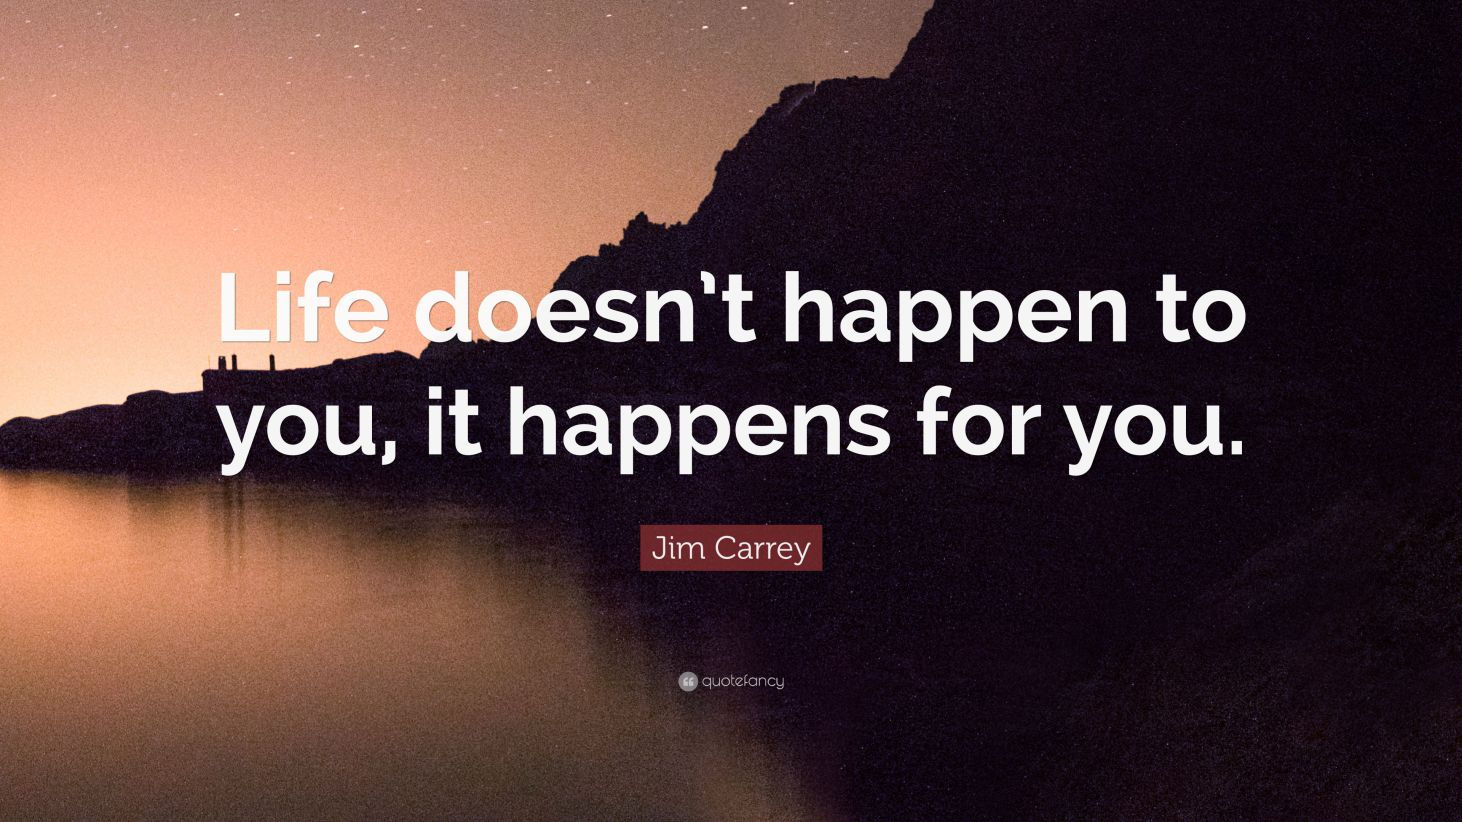 Life doesn't happen to you, it happens for you – Shift your perspective